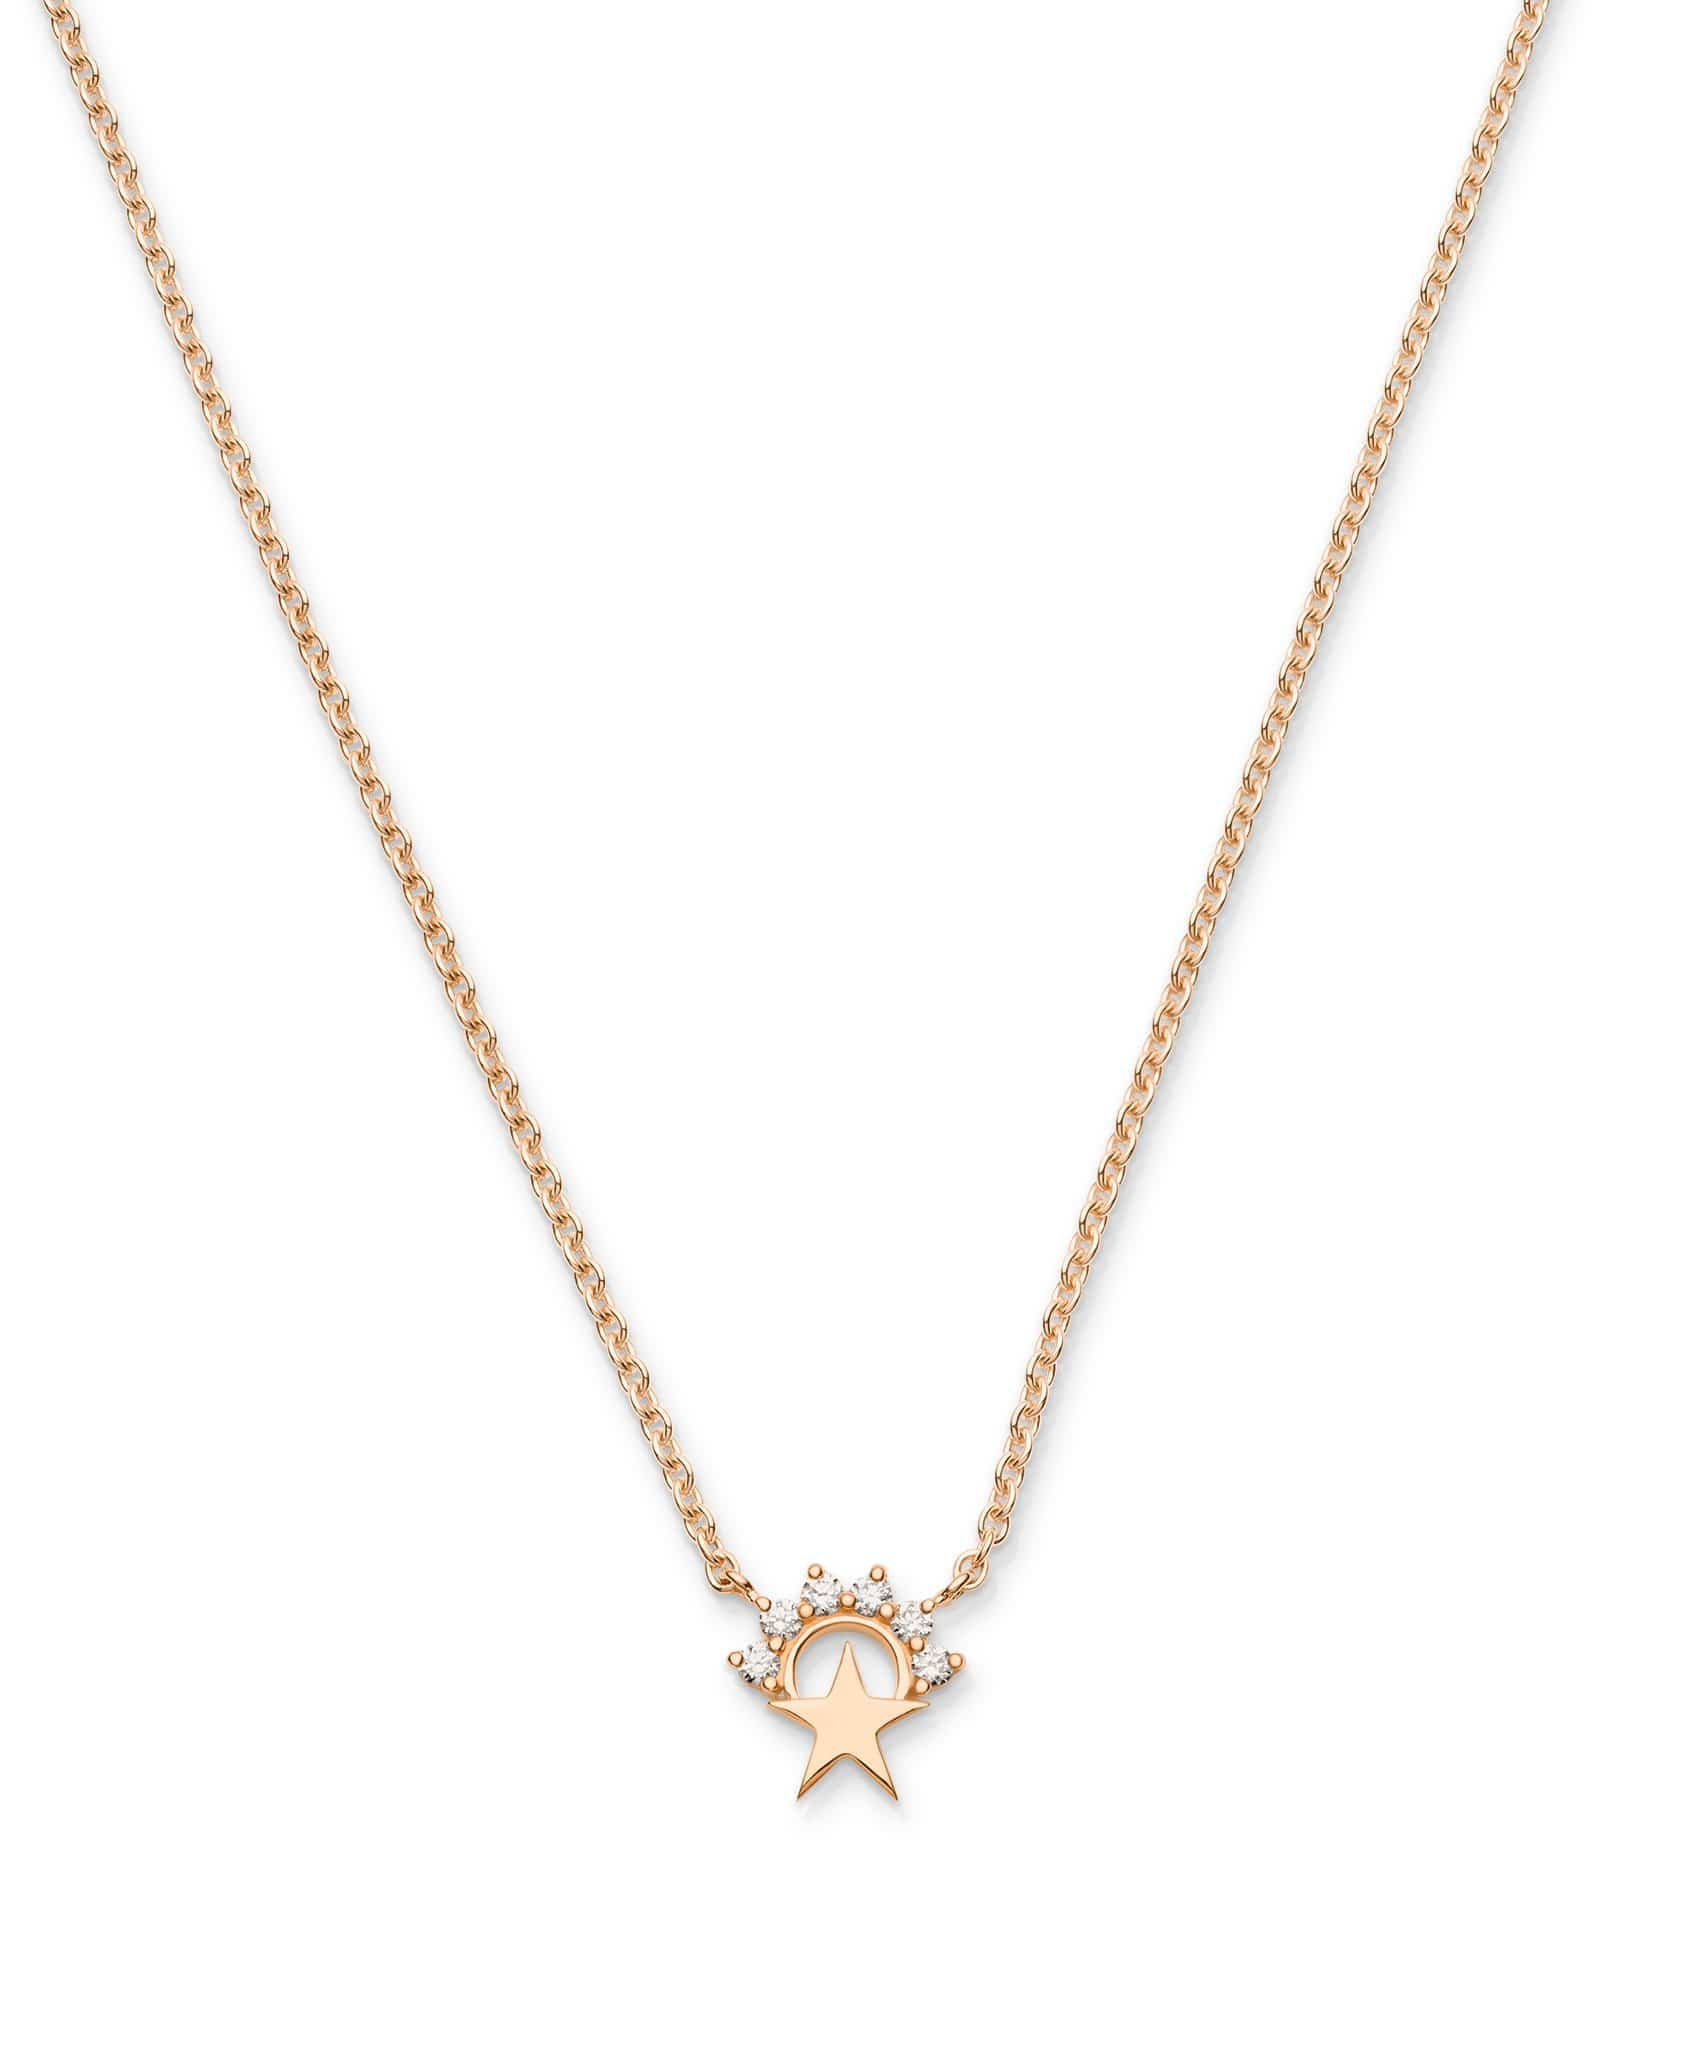 Small Star Pendant: Discover Luxury Fine Jewelry | Nouvel Heritage